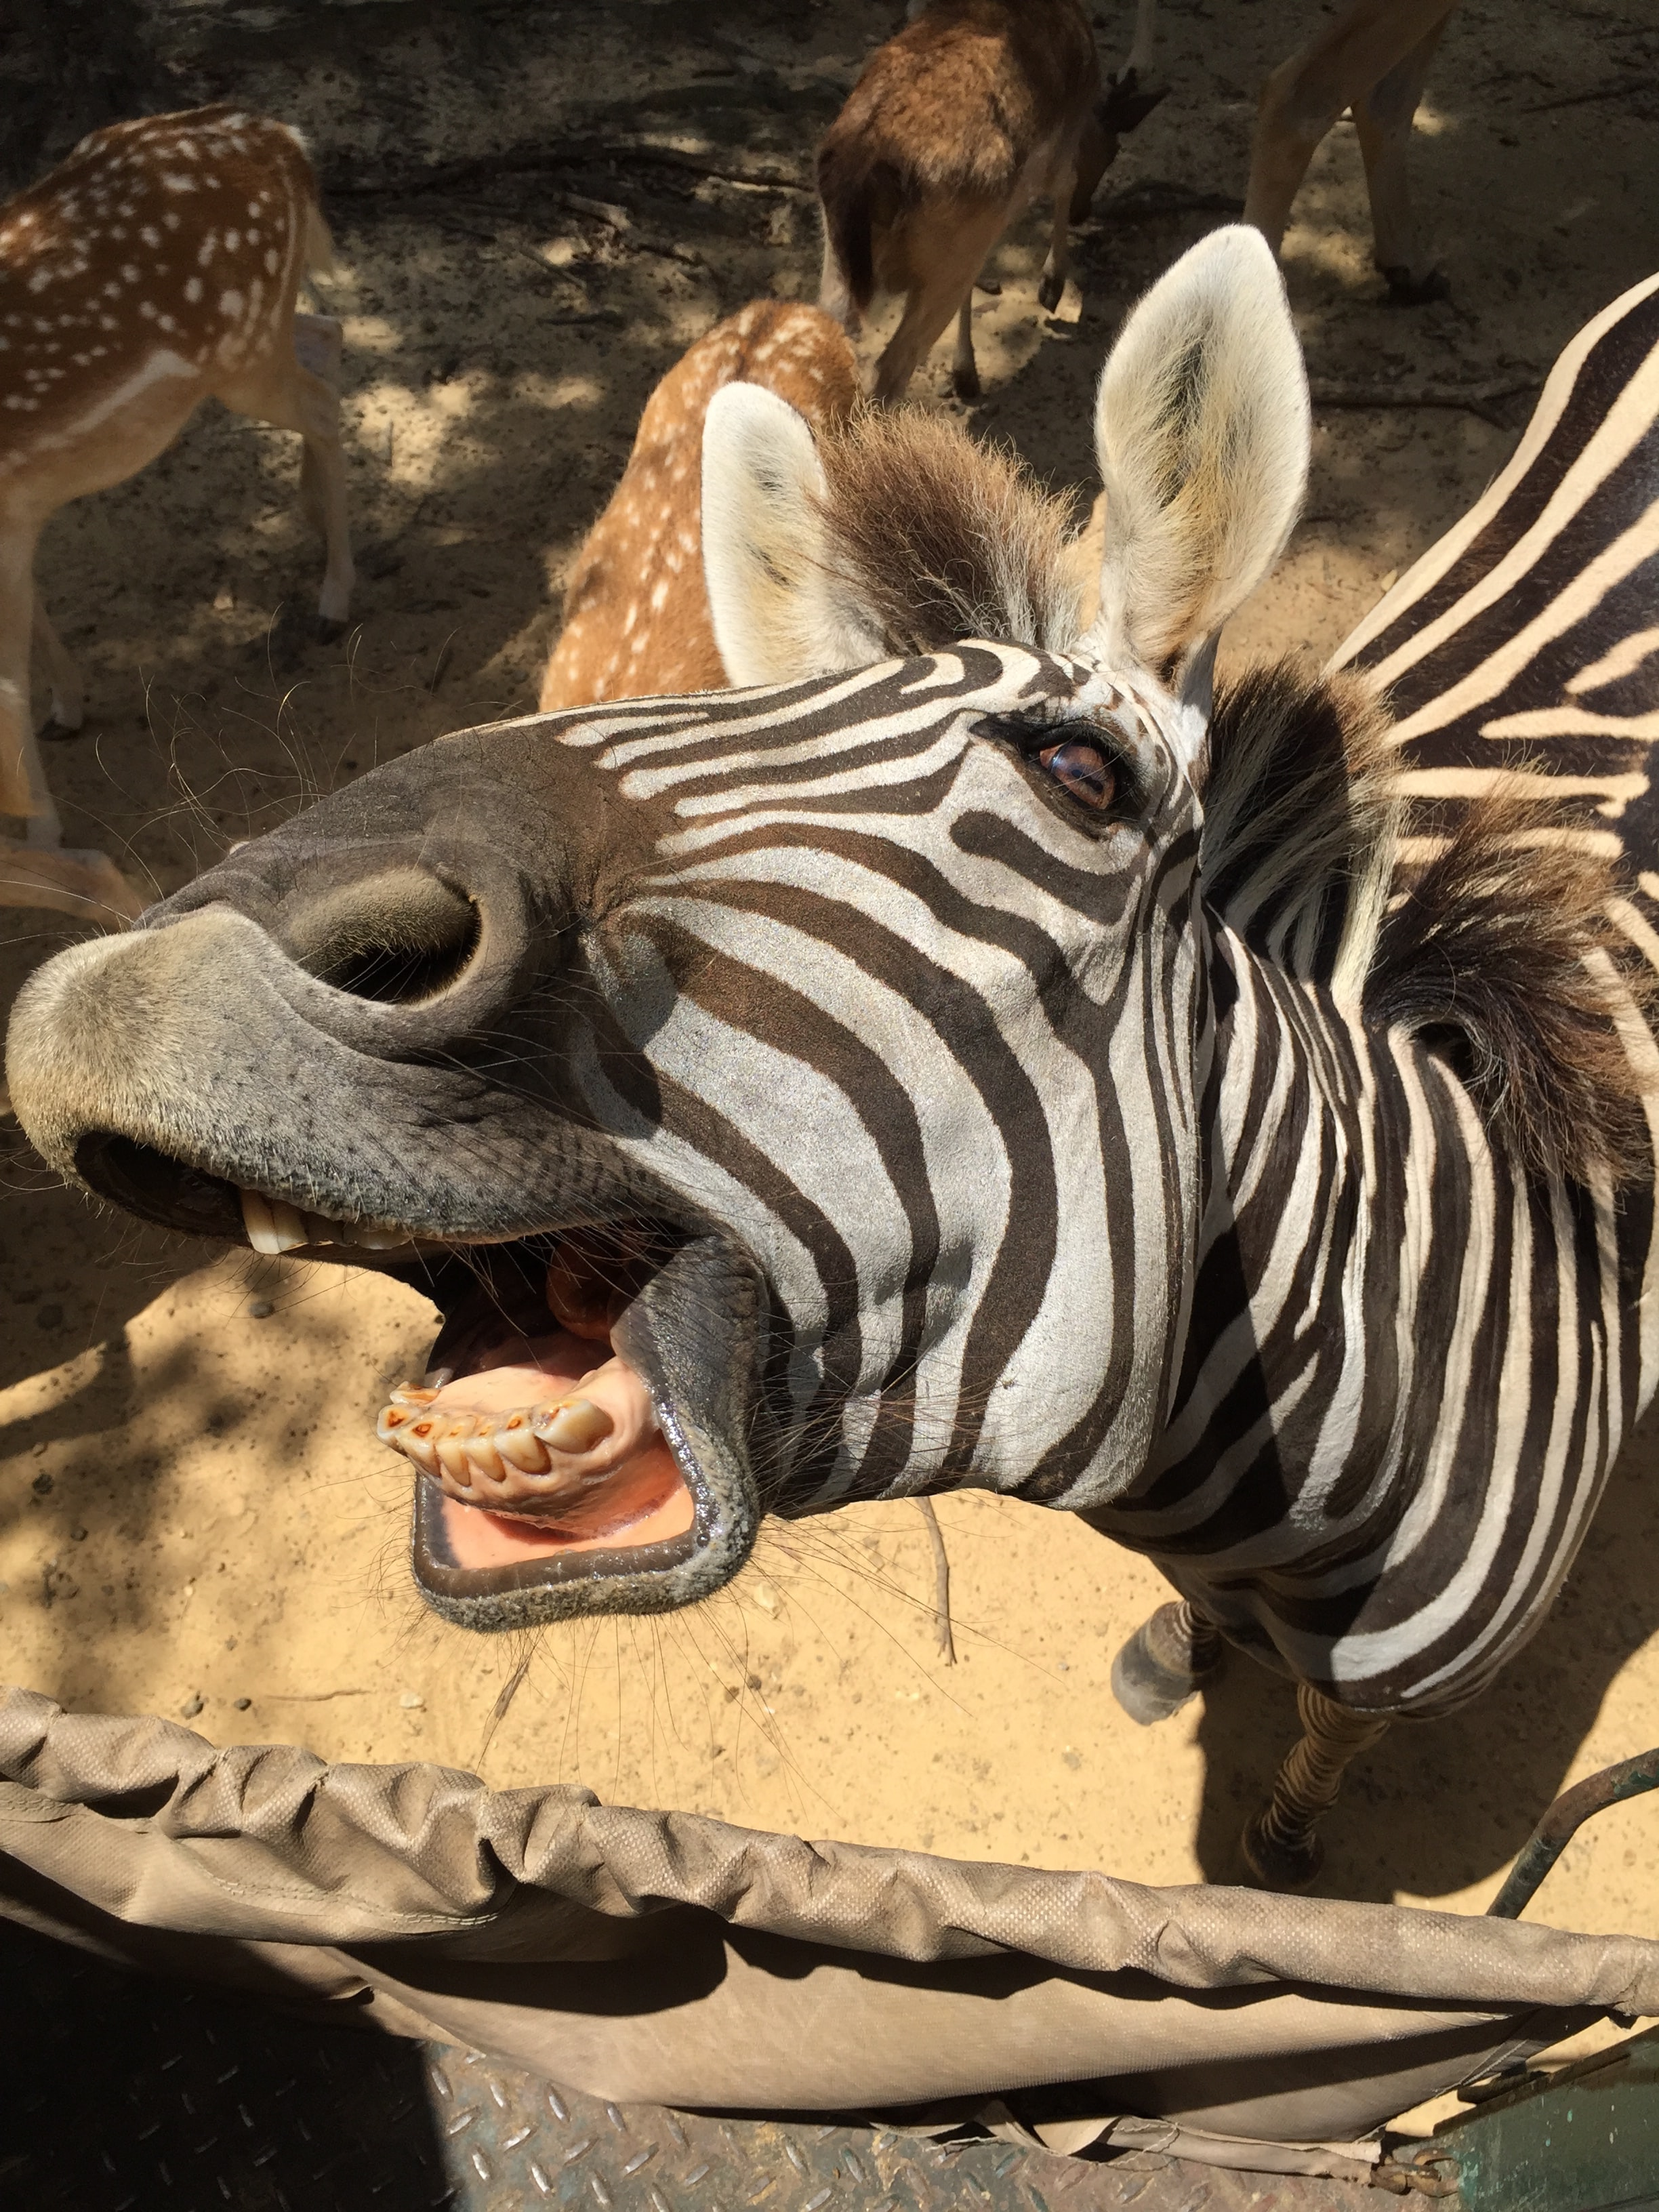 A zebra opening his mouth to yawn.